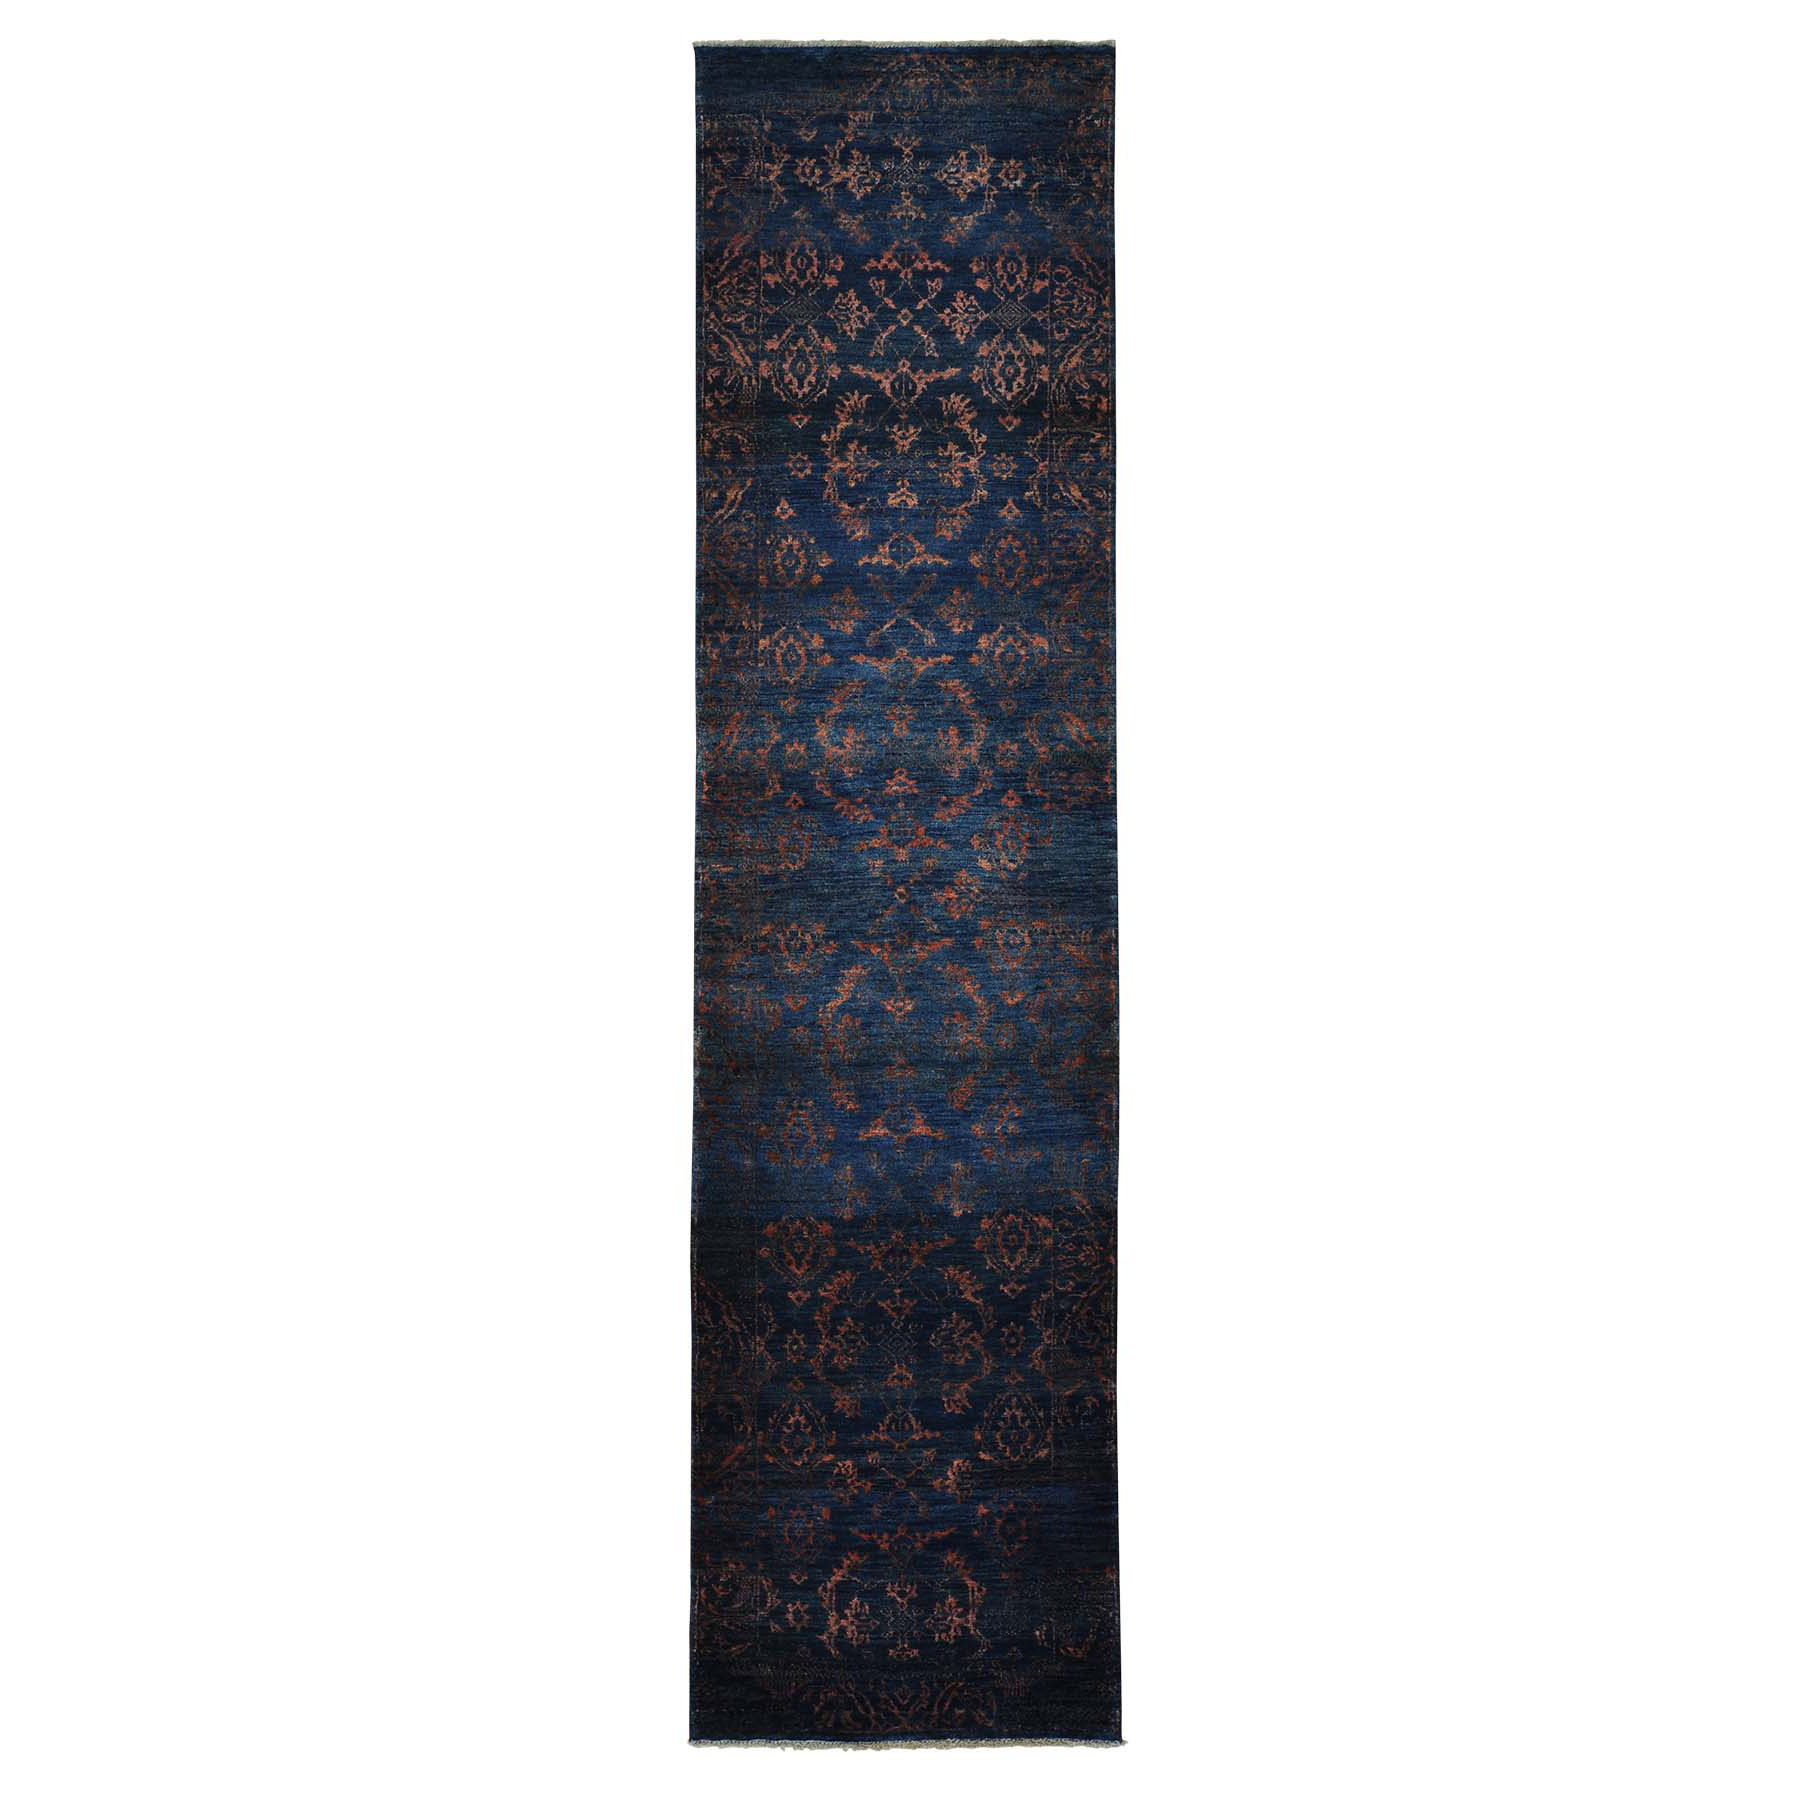 Mid Century Modern Collection Hand Knotted Black Rug No: 0154494